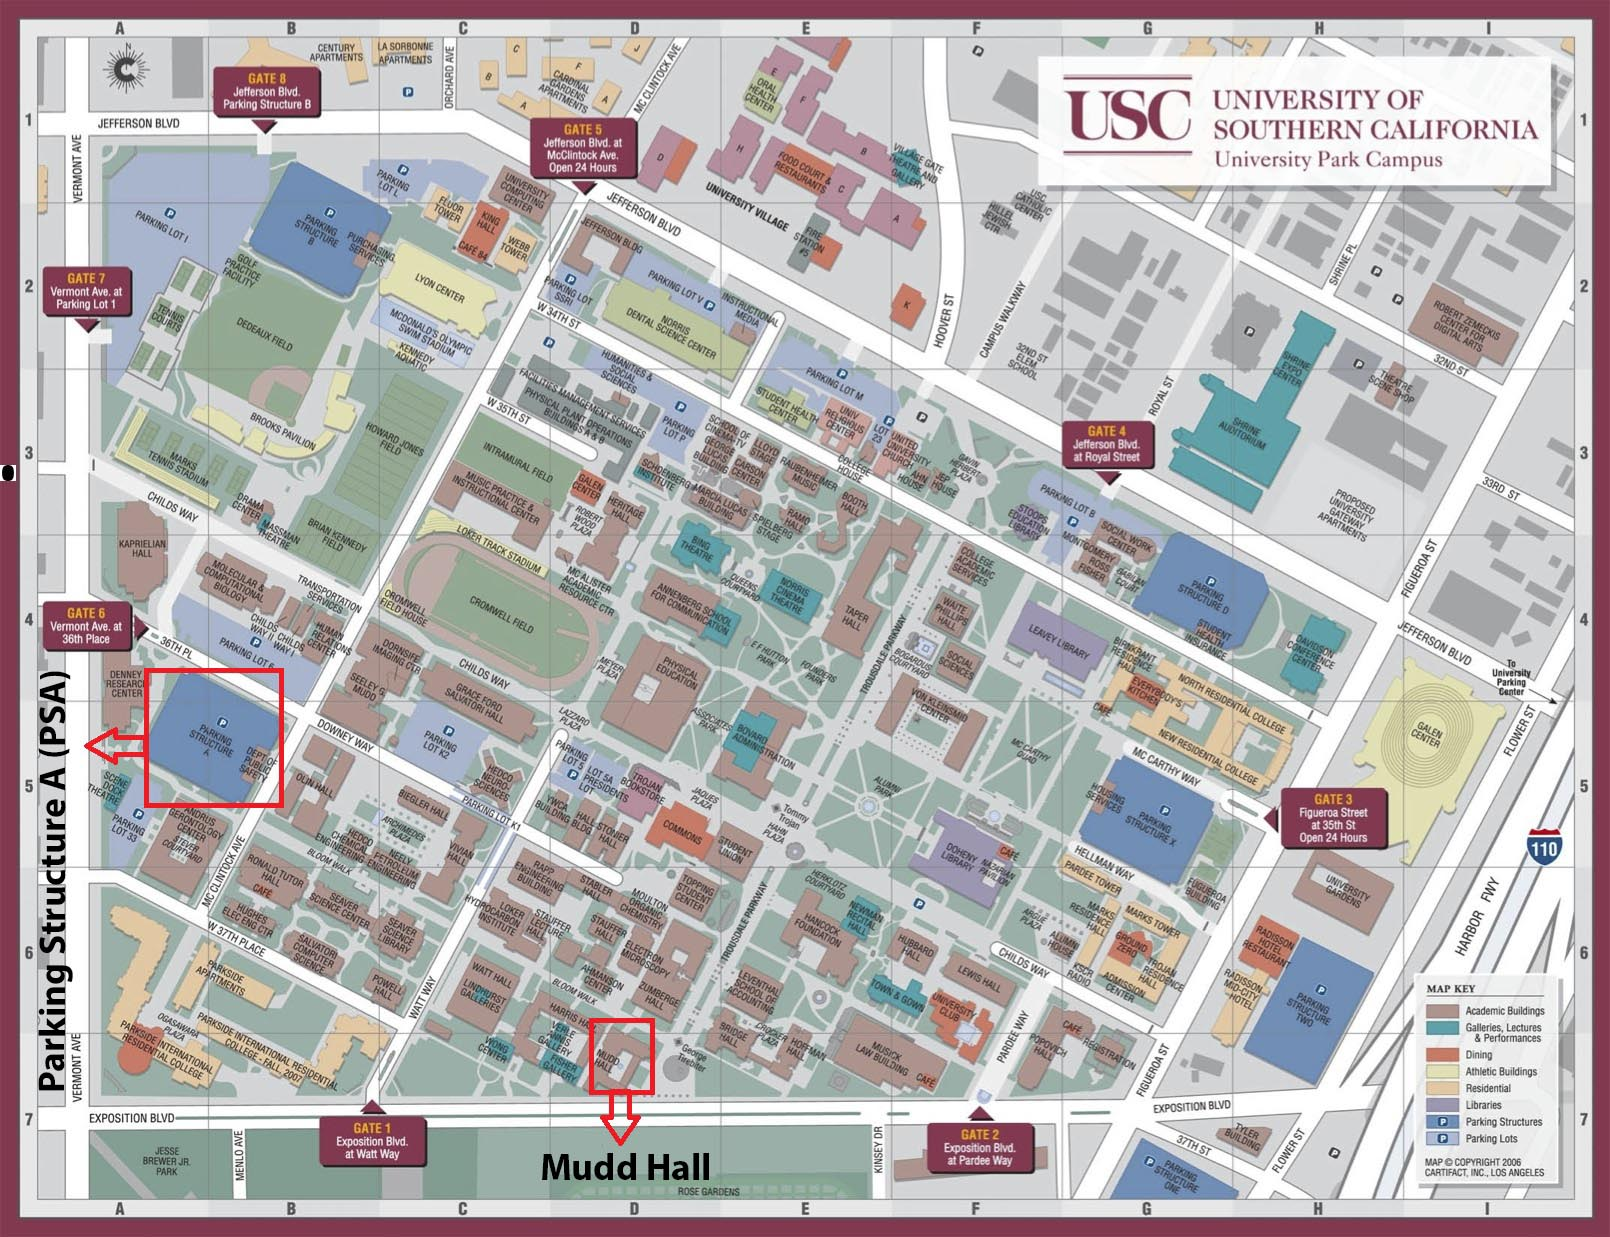 Map Of Usc Campus Southern California Geobiology Symposium Map Of Usc Campus